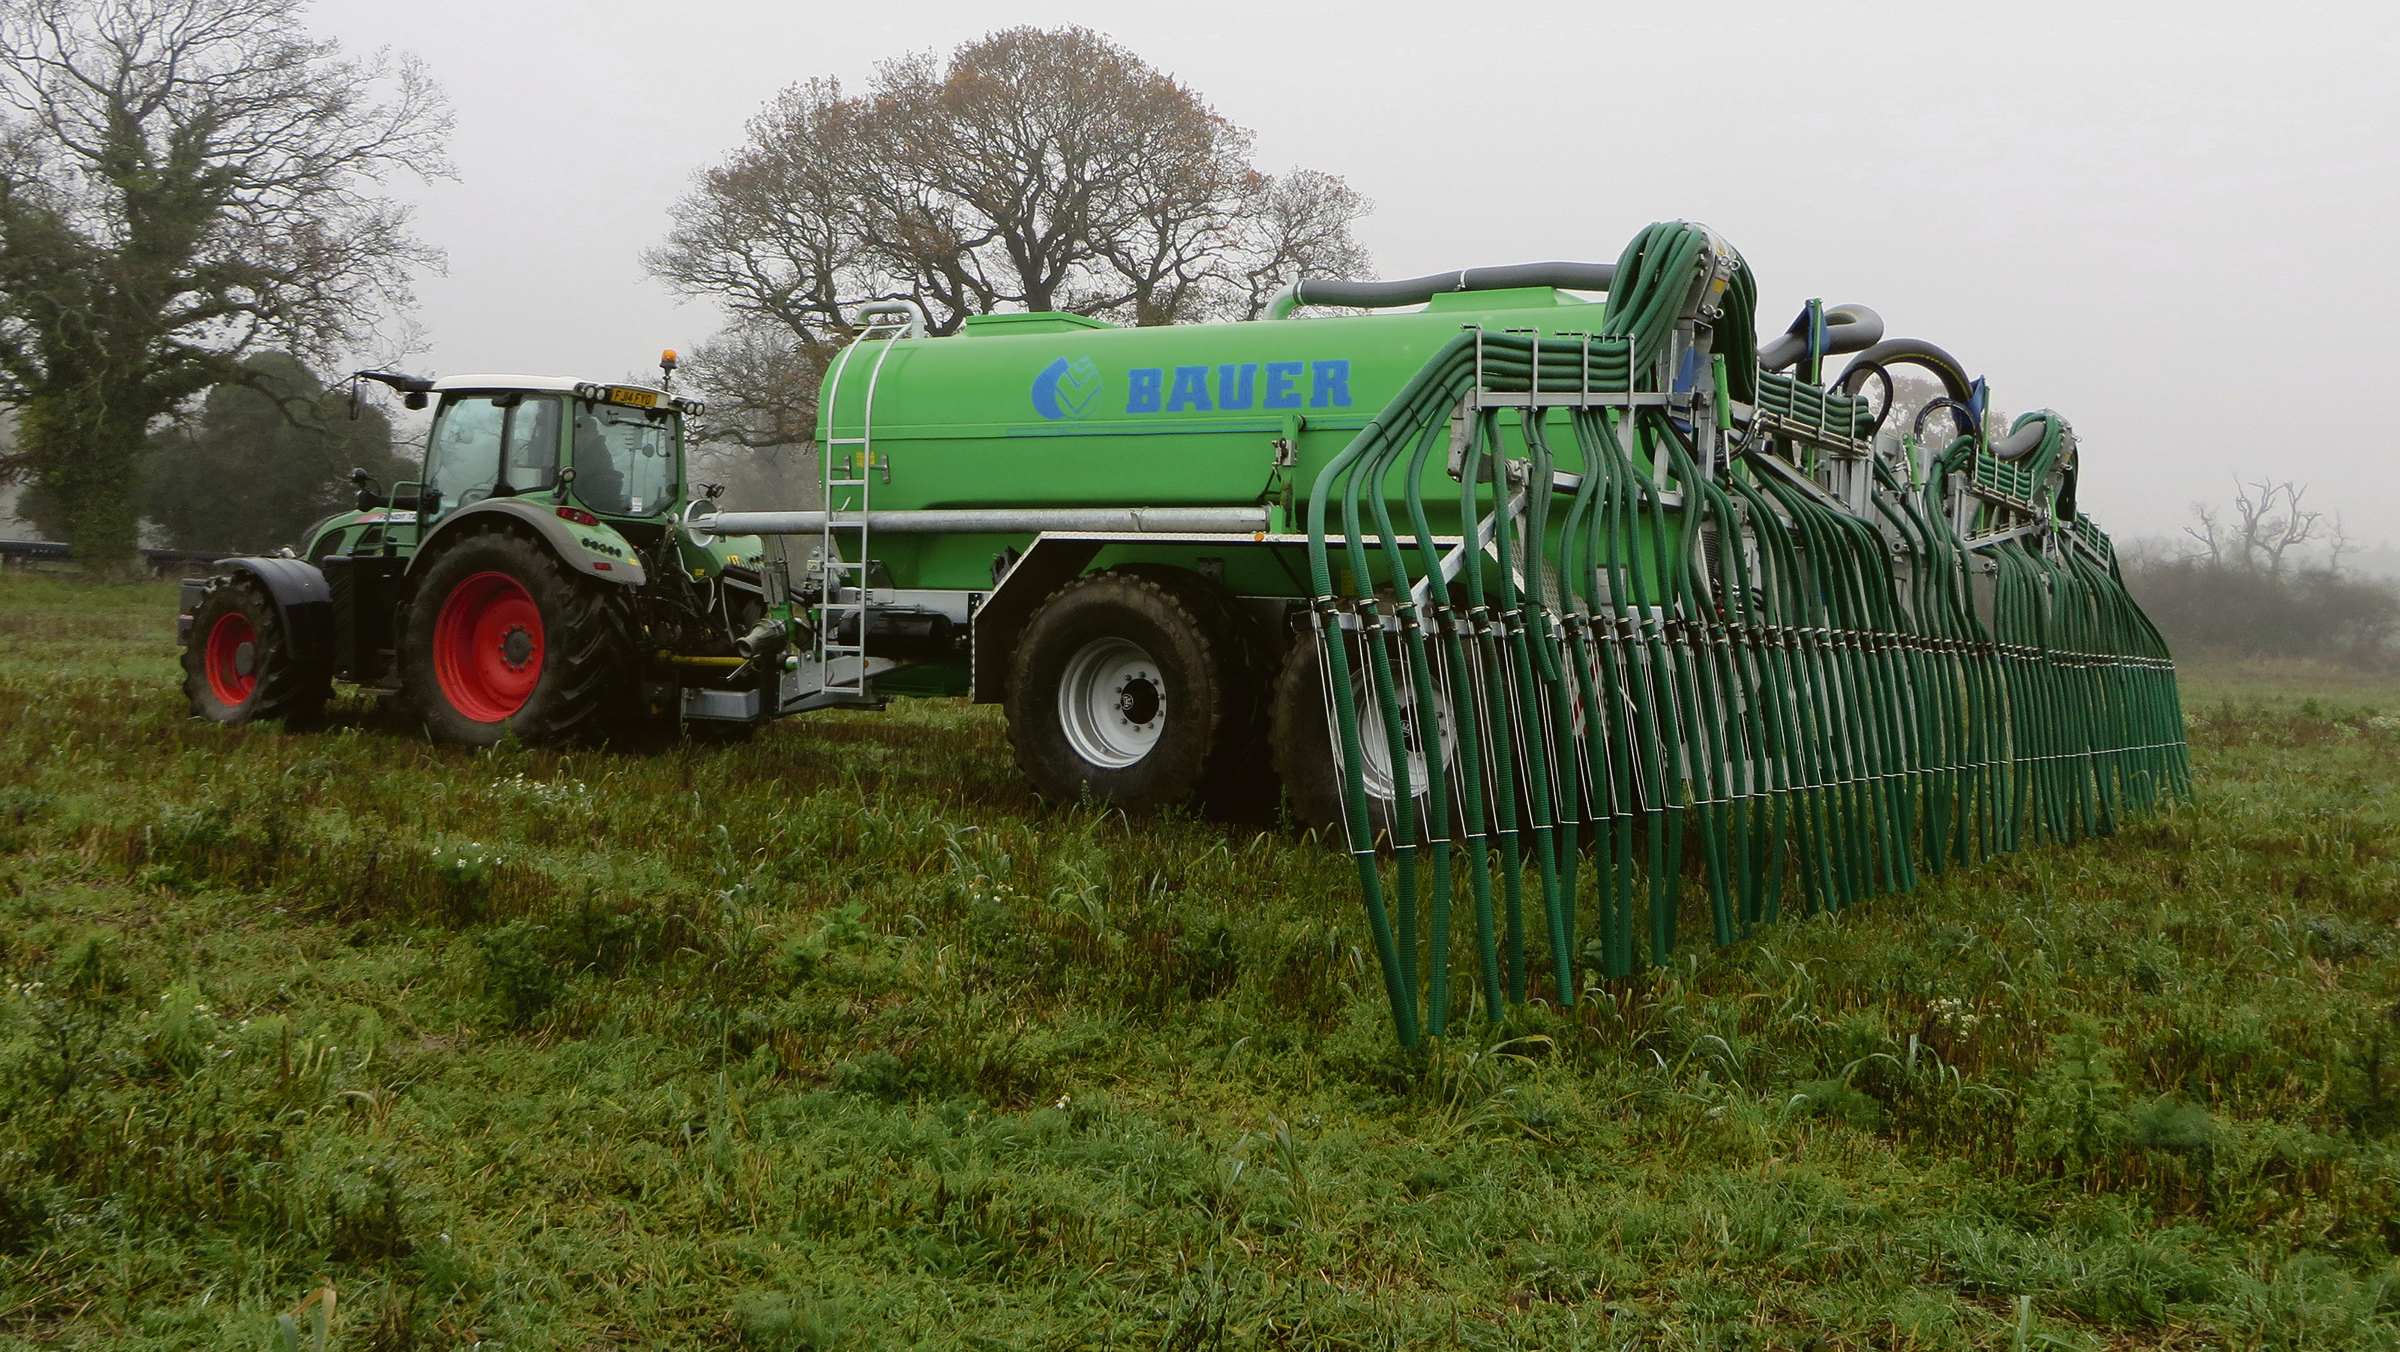 Muck and slurry: Bespoke tanker built to tackle digestate tasks